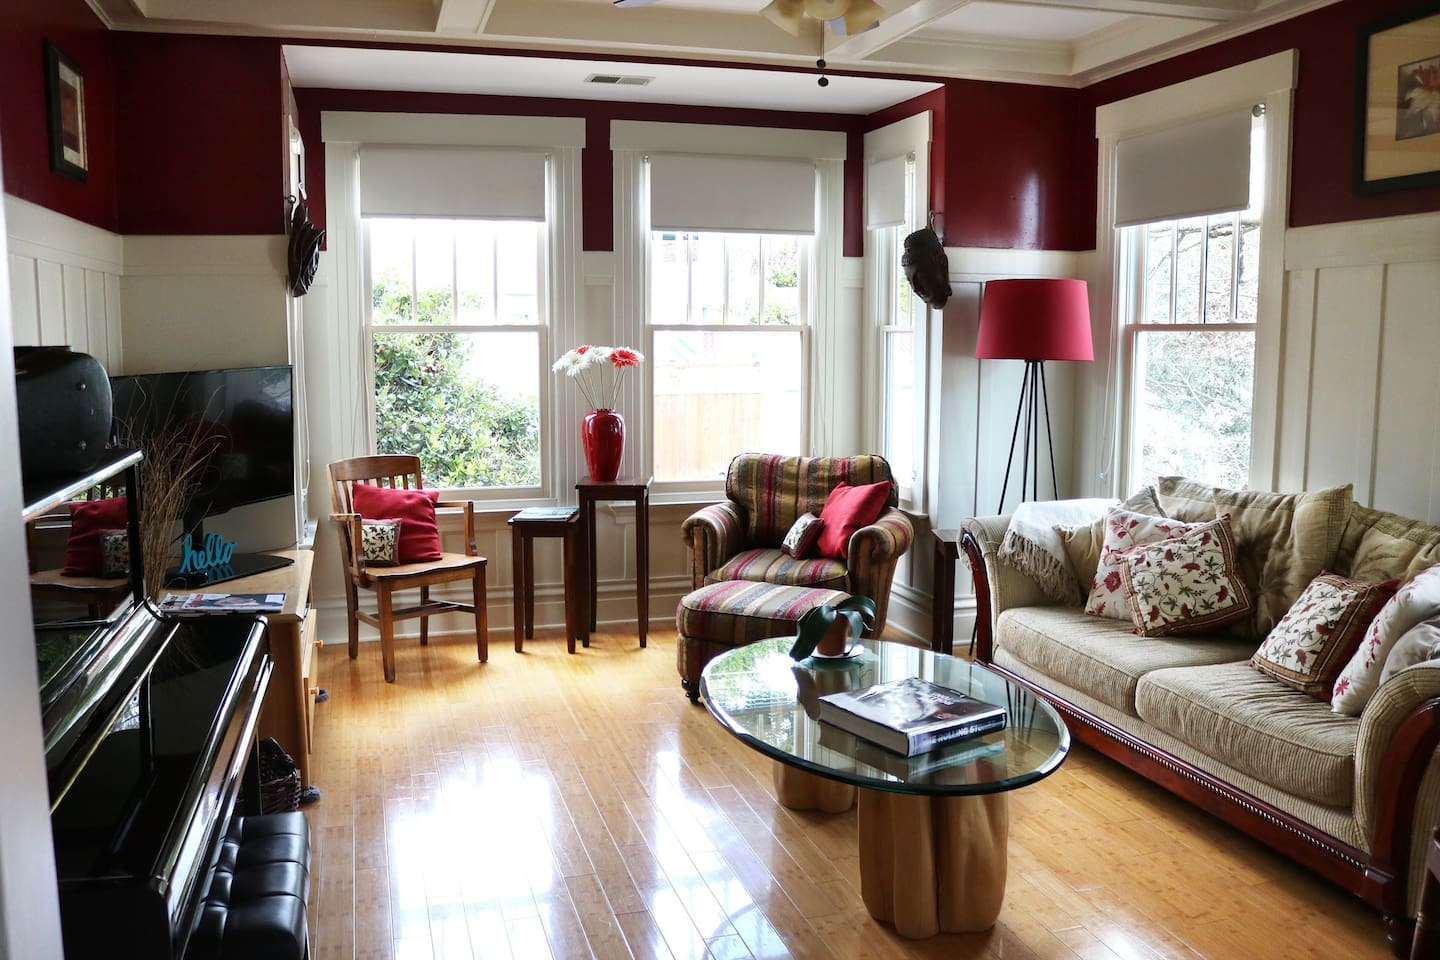 Living Room; Bright with Bay Window, Trees outside, Bamboo Floor, Piano and lots of comfortable seating.